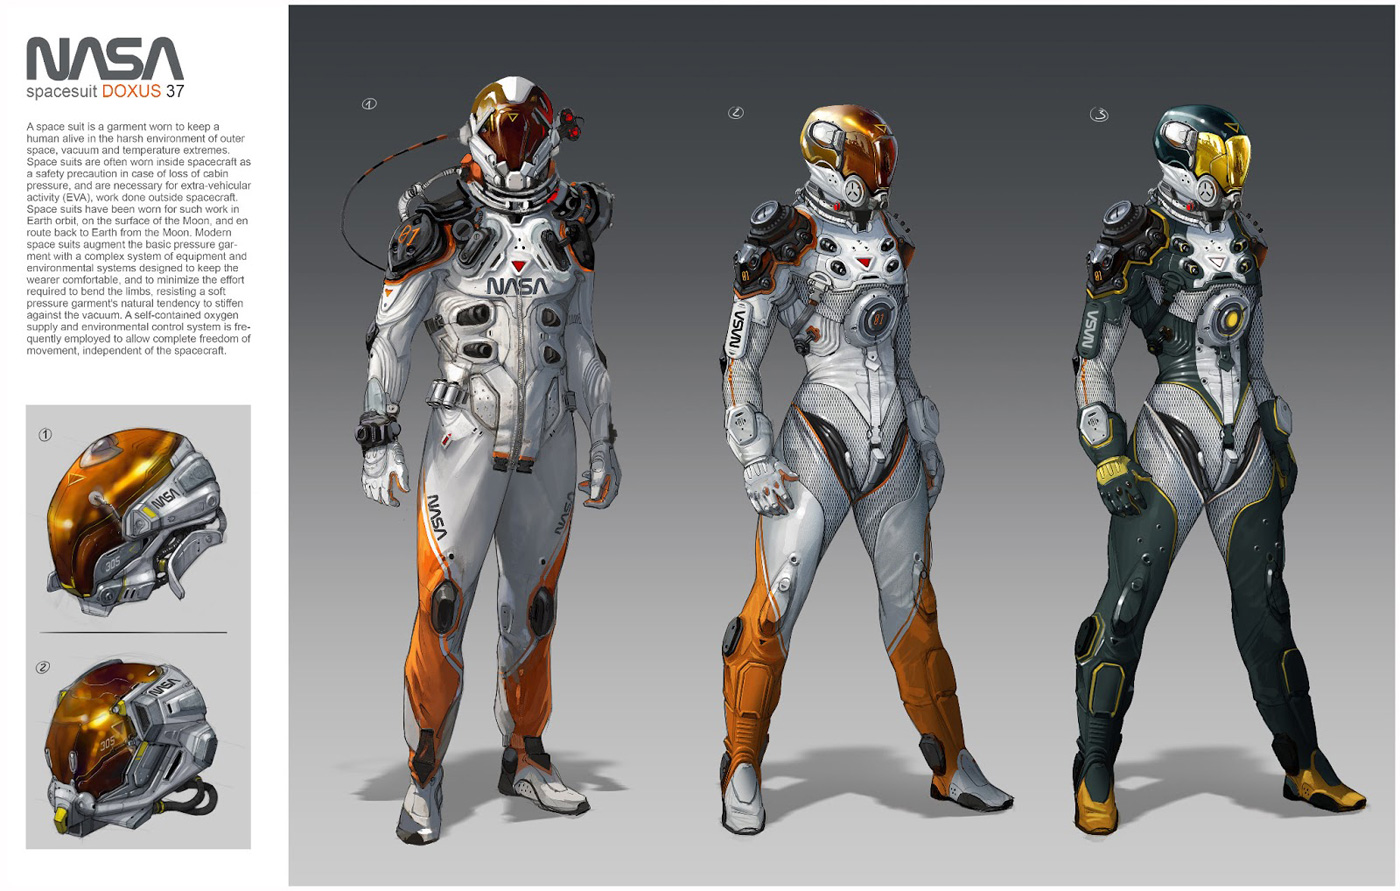 character design references oscars cafaro spaces suits